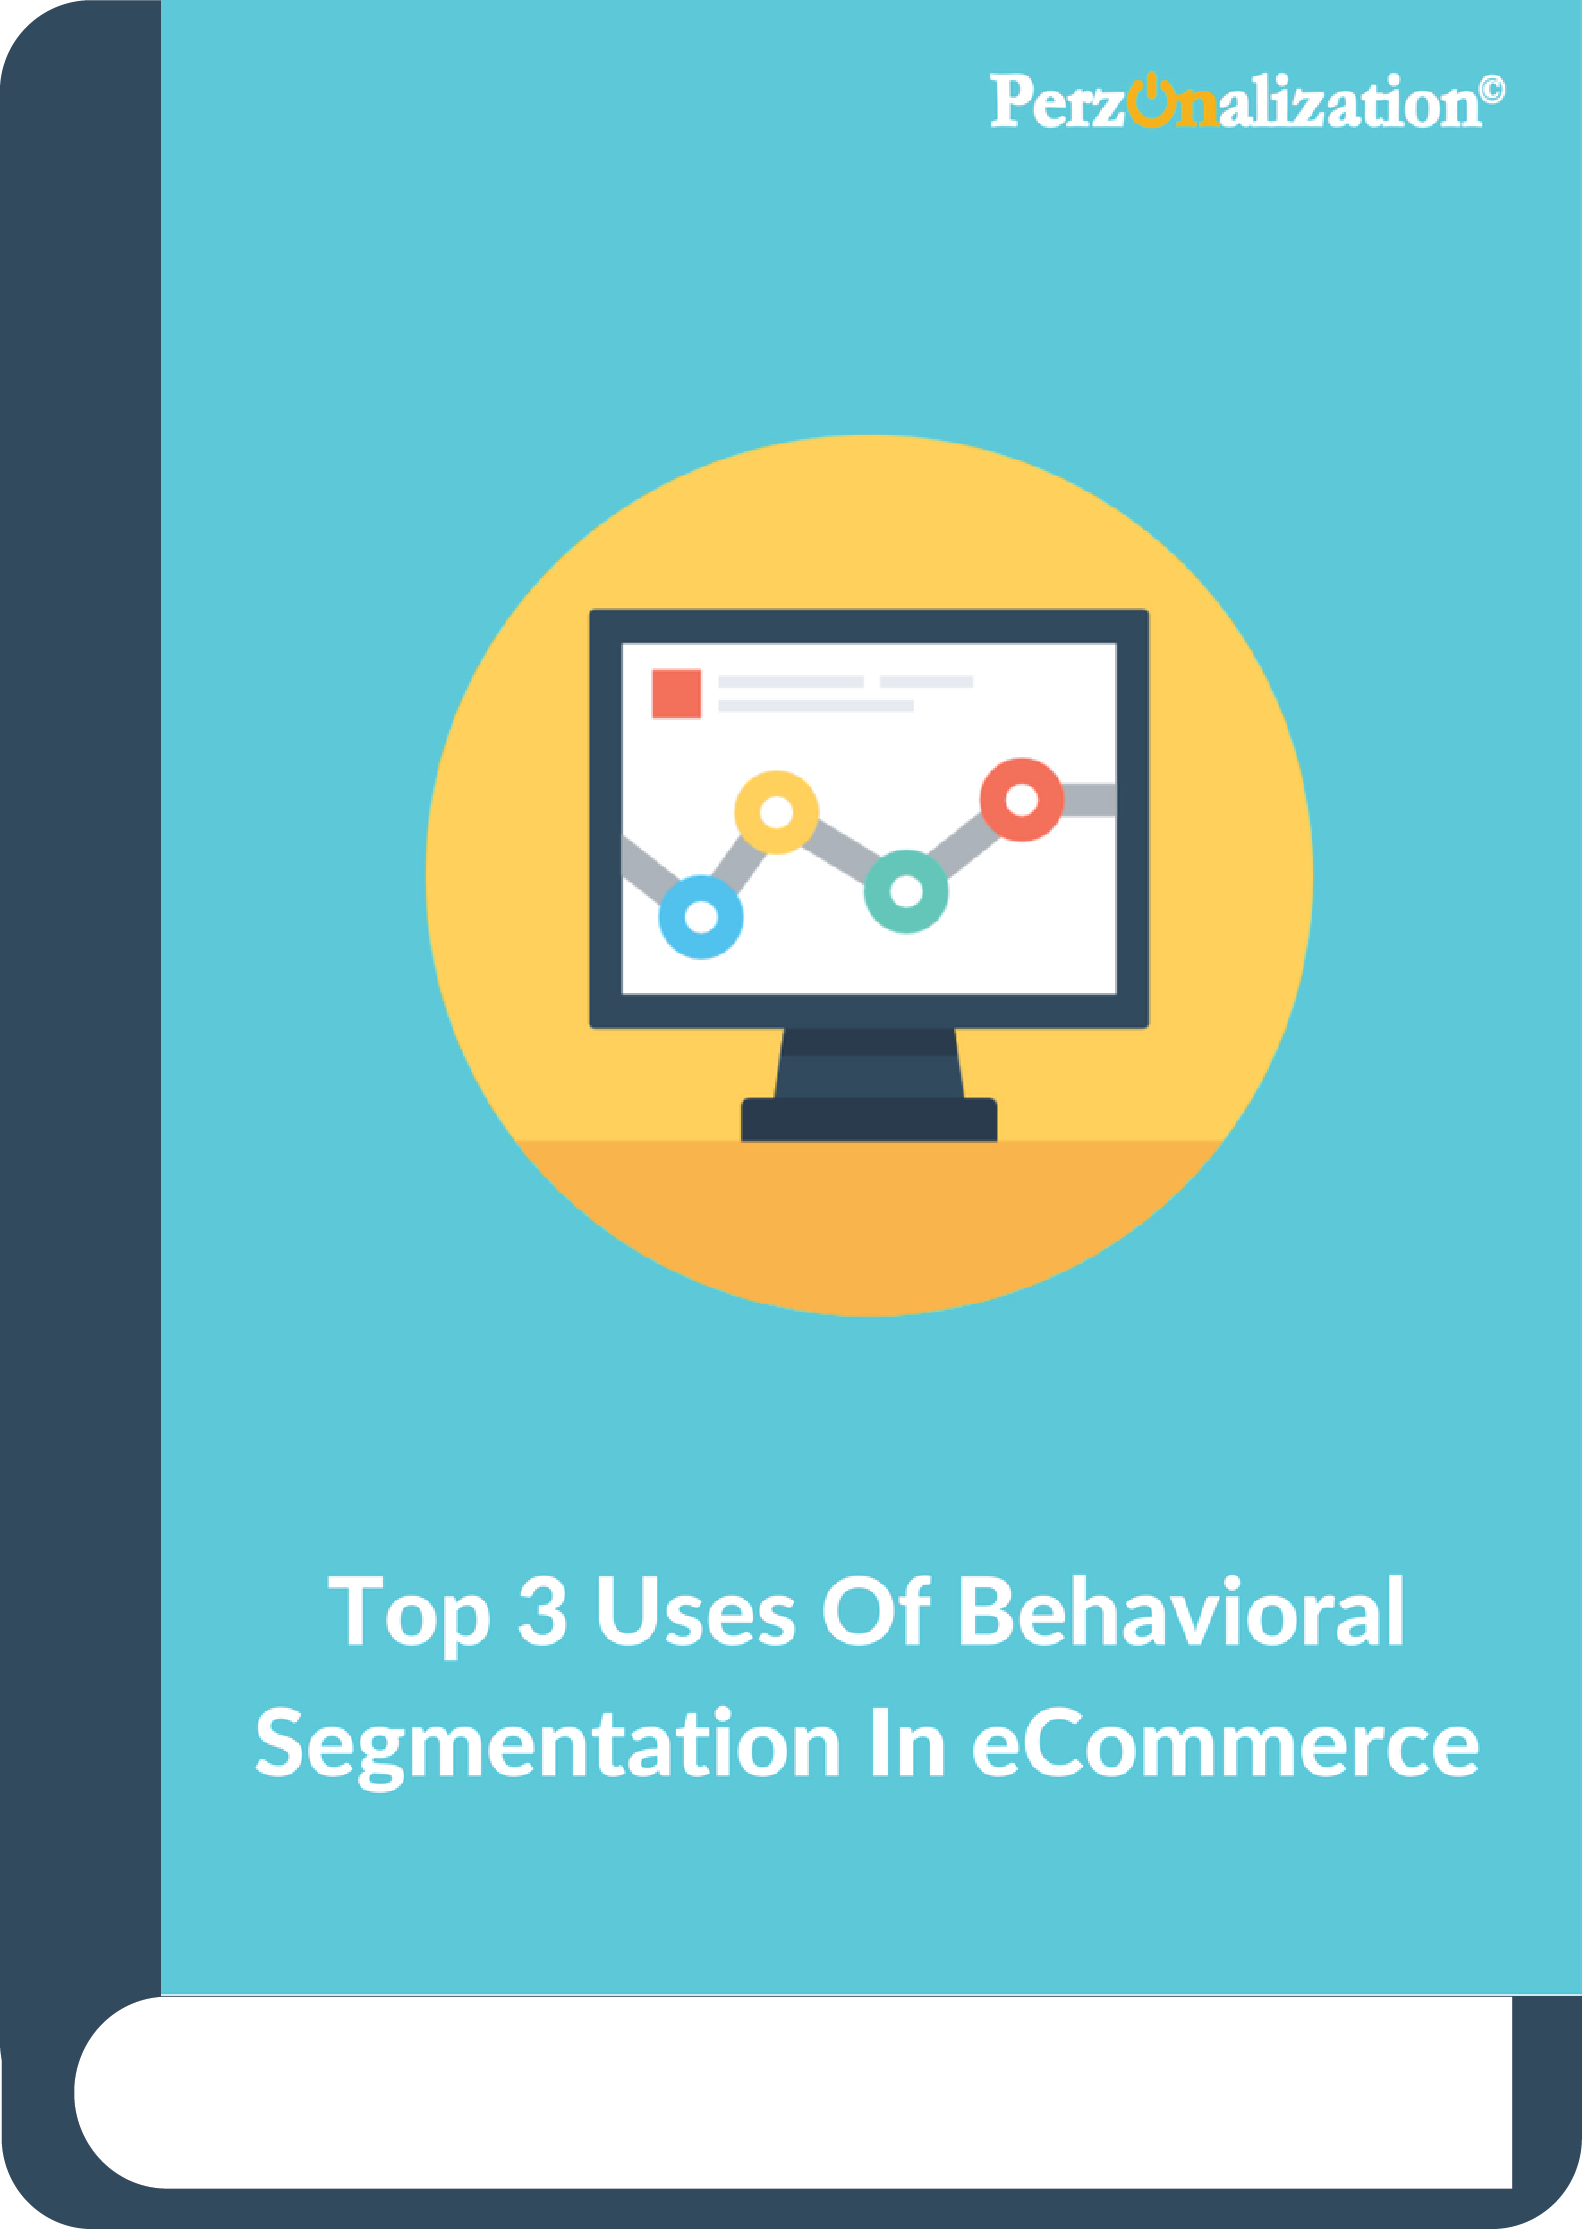 Trying to Improve Your Customers' Interaction With Your Online Store? Find Out How Behavioral Segmentation and Behavioral Targeting Can Save You Months!